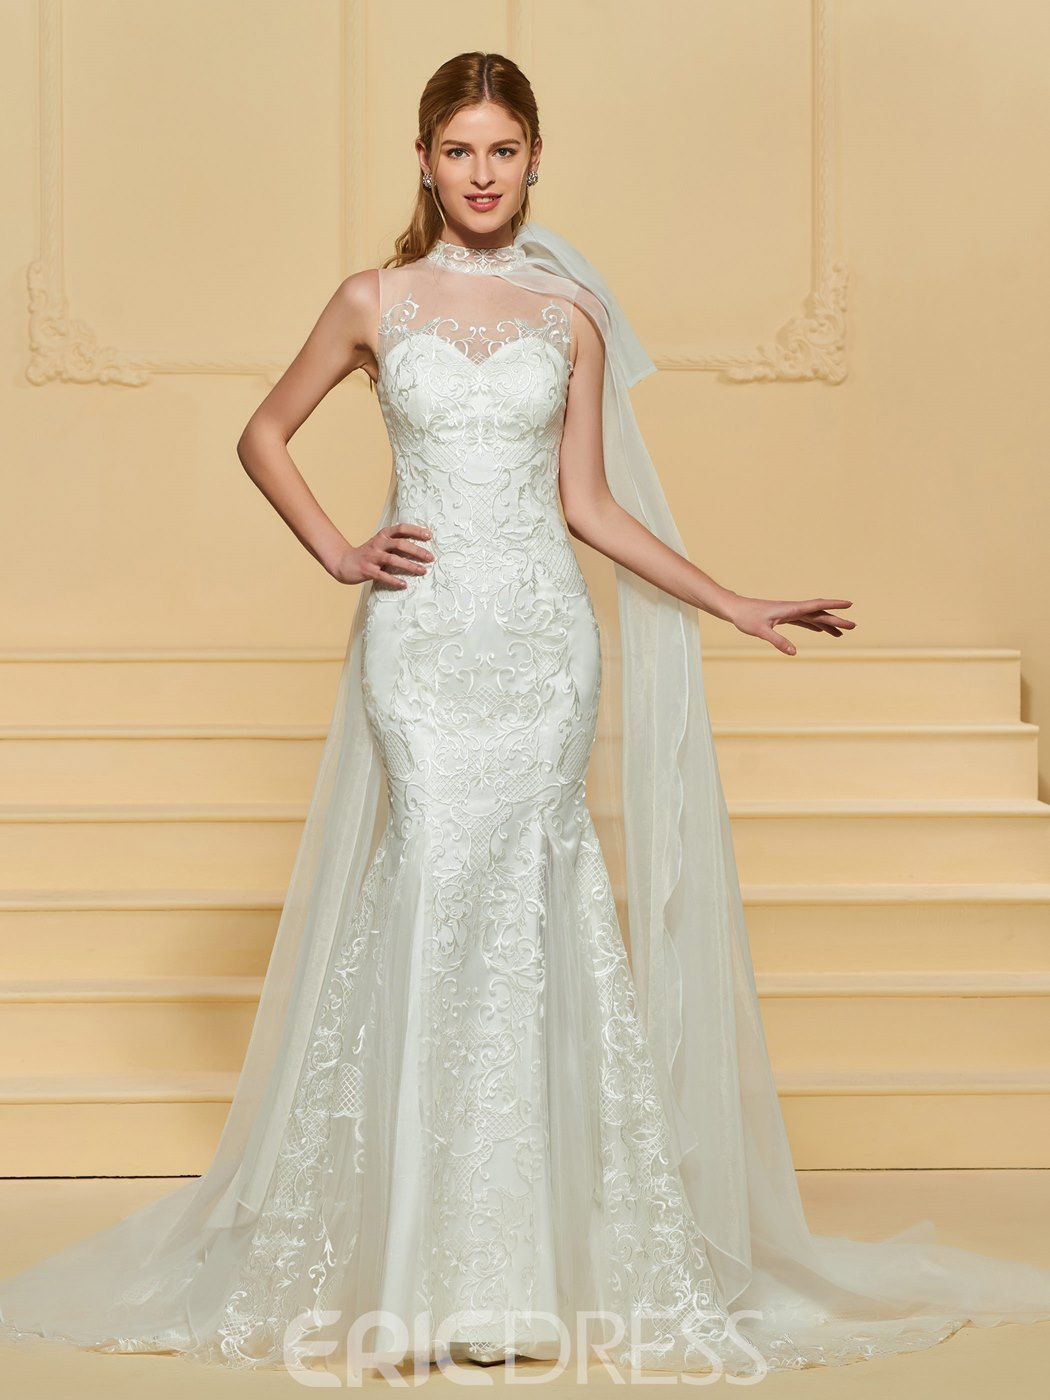 Ericdress Mermaid Lace High Neck Wedding Dress 13169615 - Ericdress.com